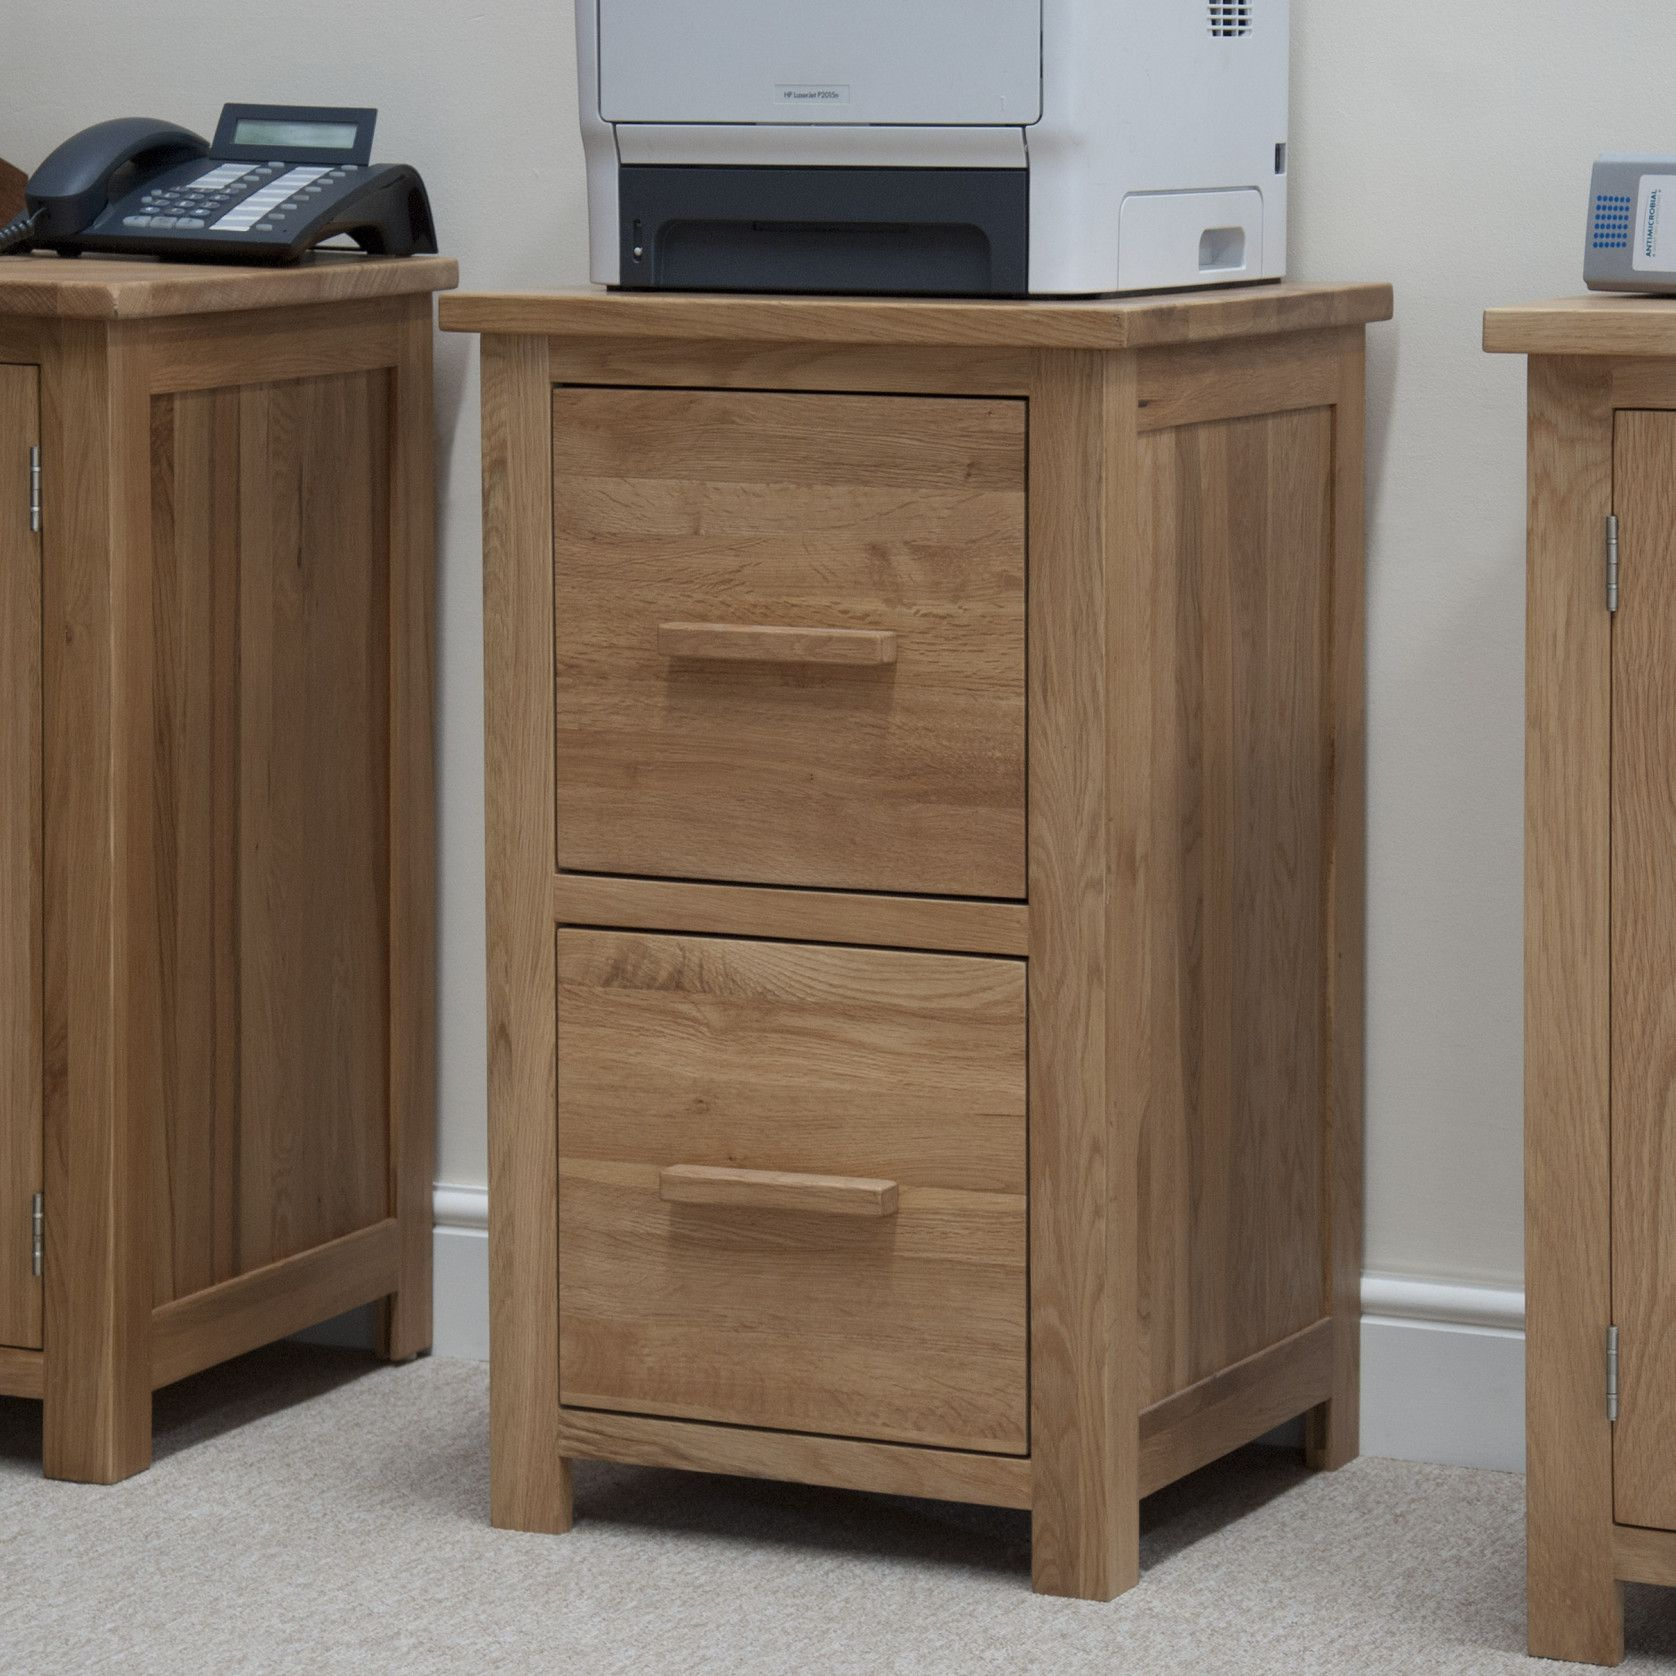 20 Mission Style File Cabinet 2 Drawer Kitchen Island Countertop Ideas Check More At